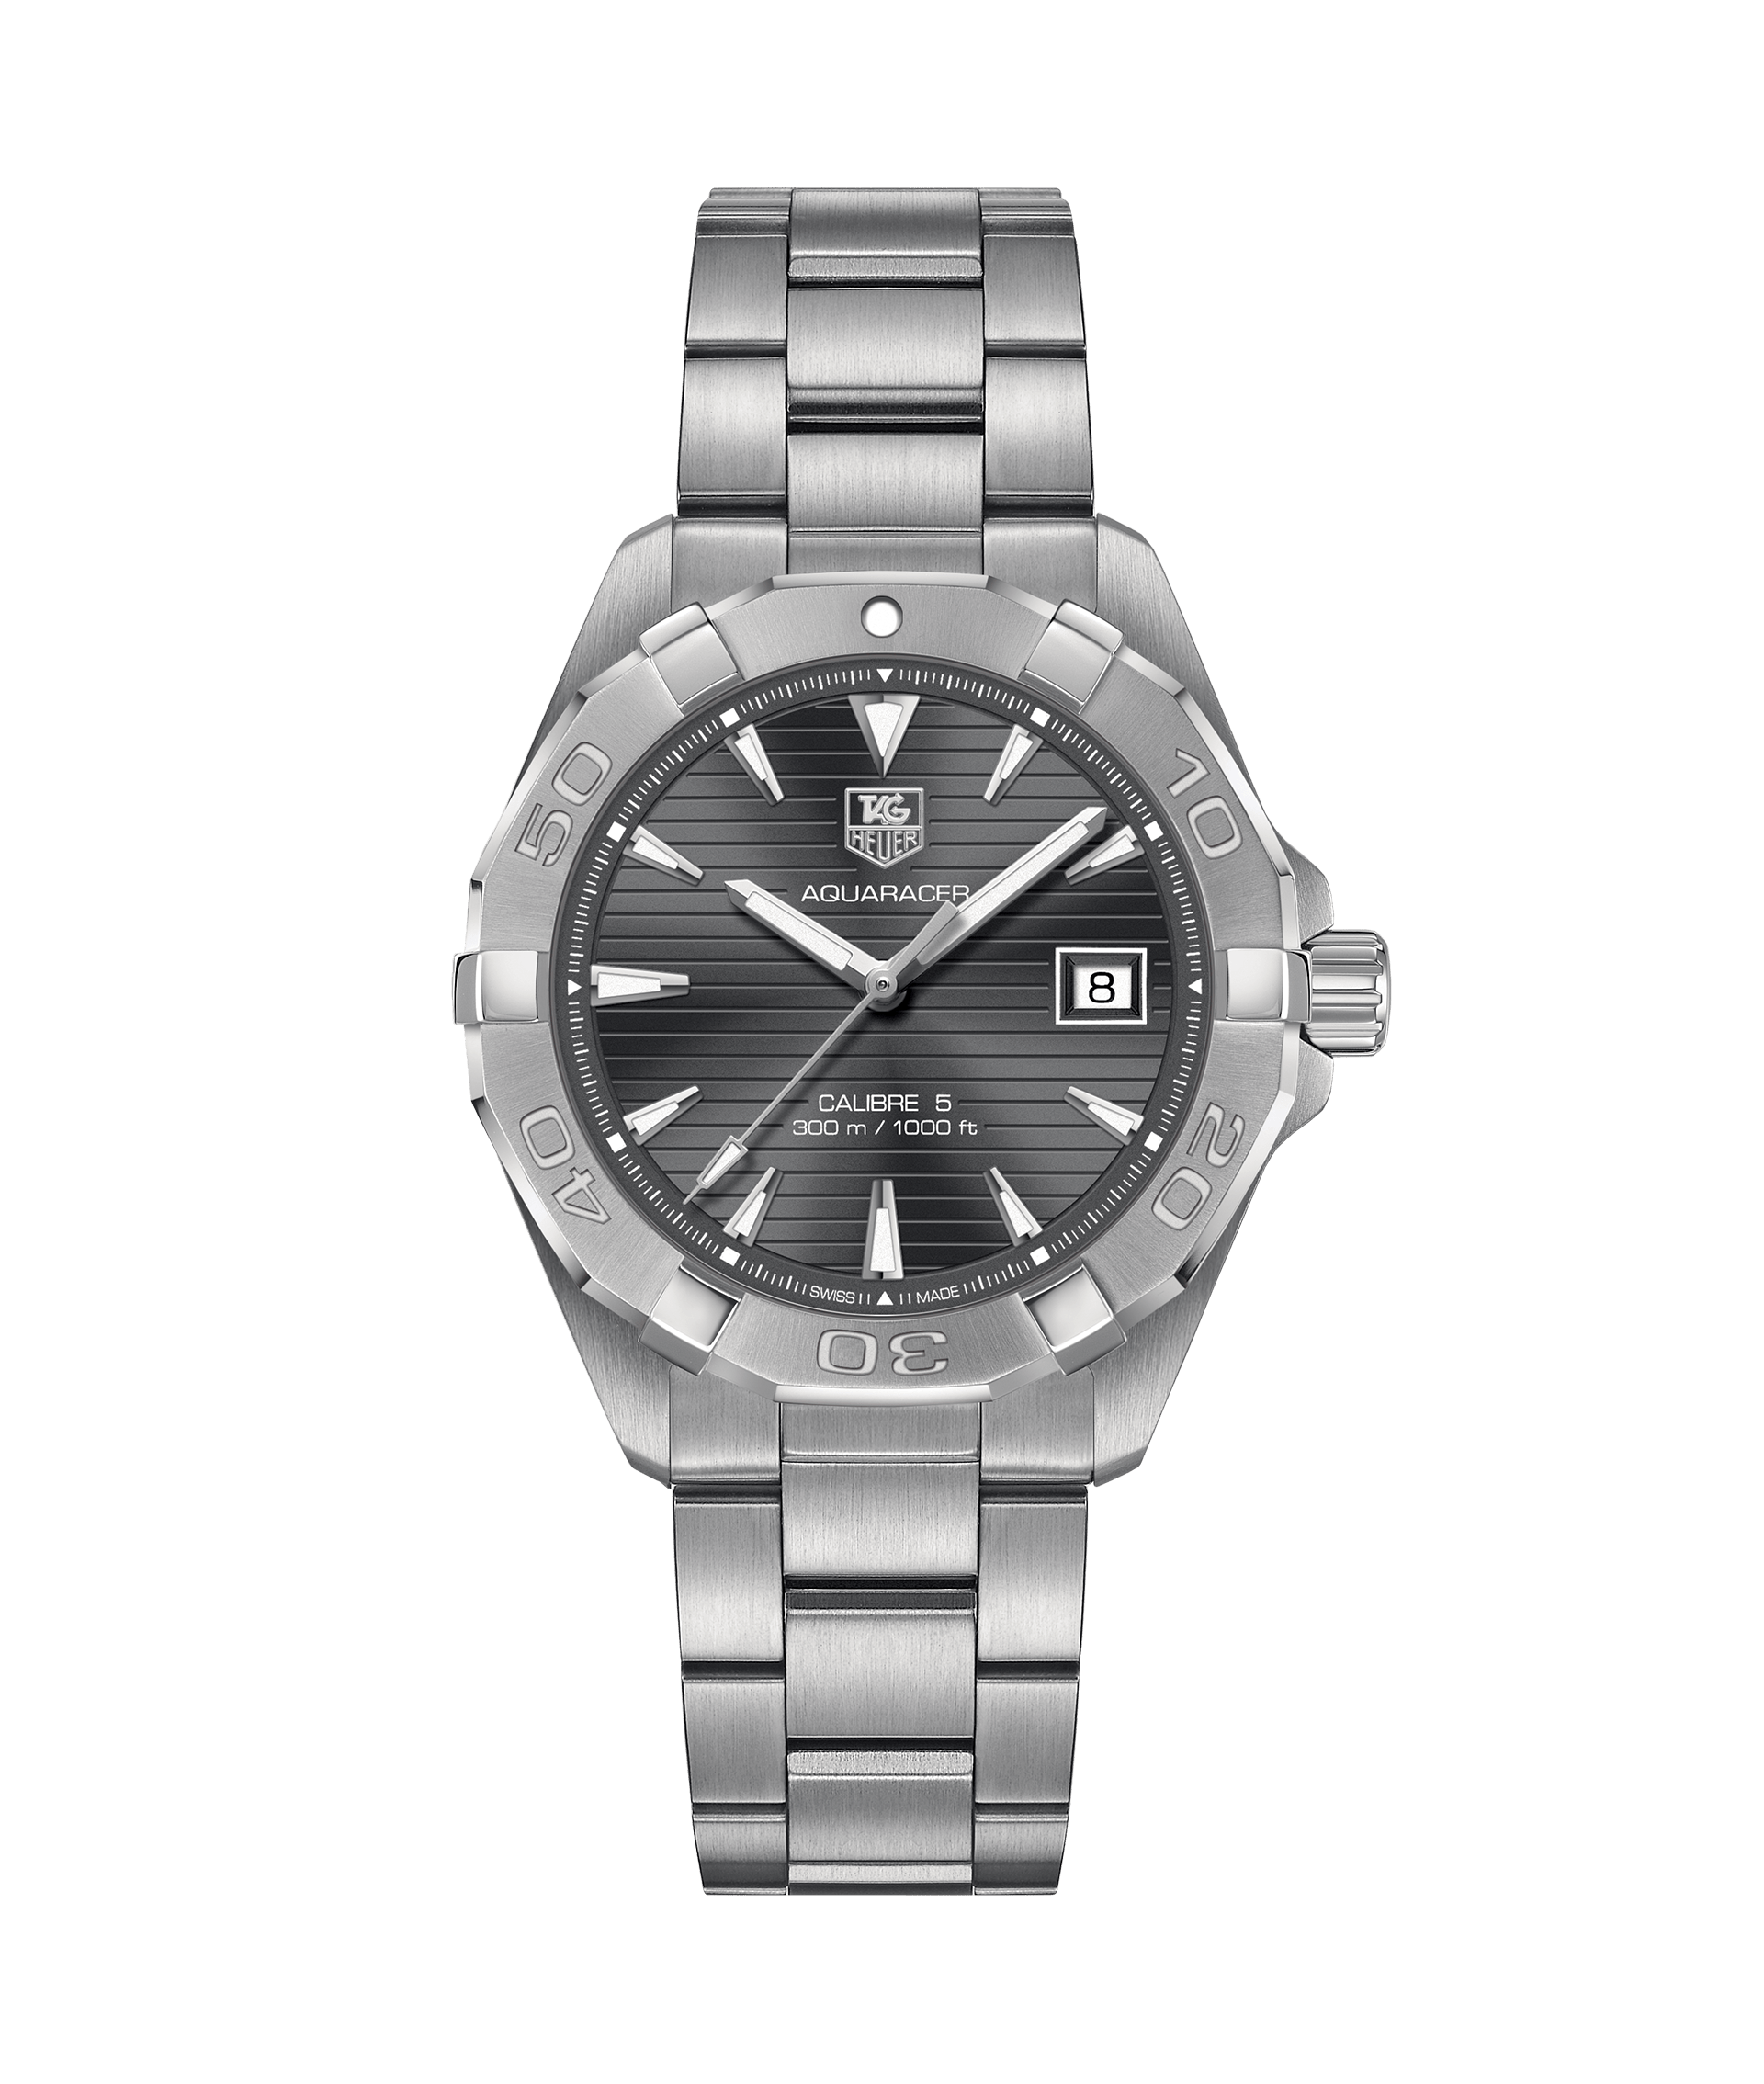 0aca1ae6c64 Aquaracer Calibre 5 Automatic Watch 300M - 40.5 mm WAY2113.BA0928 TAG Heuer  watch price